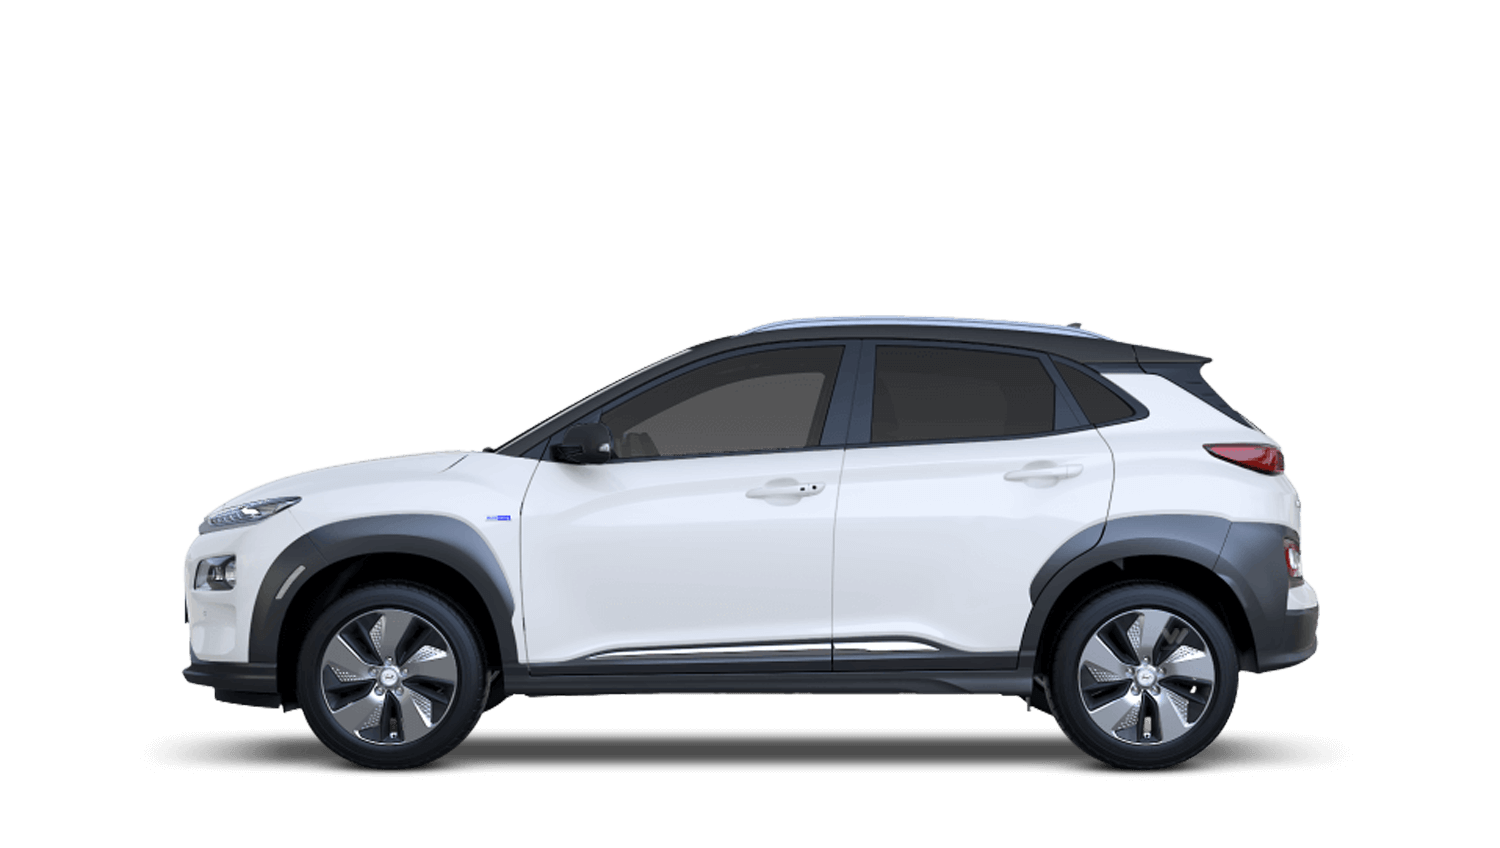 Chalk White Hyundai KONA Electric